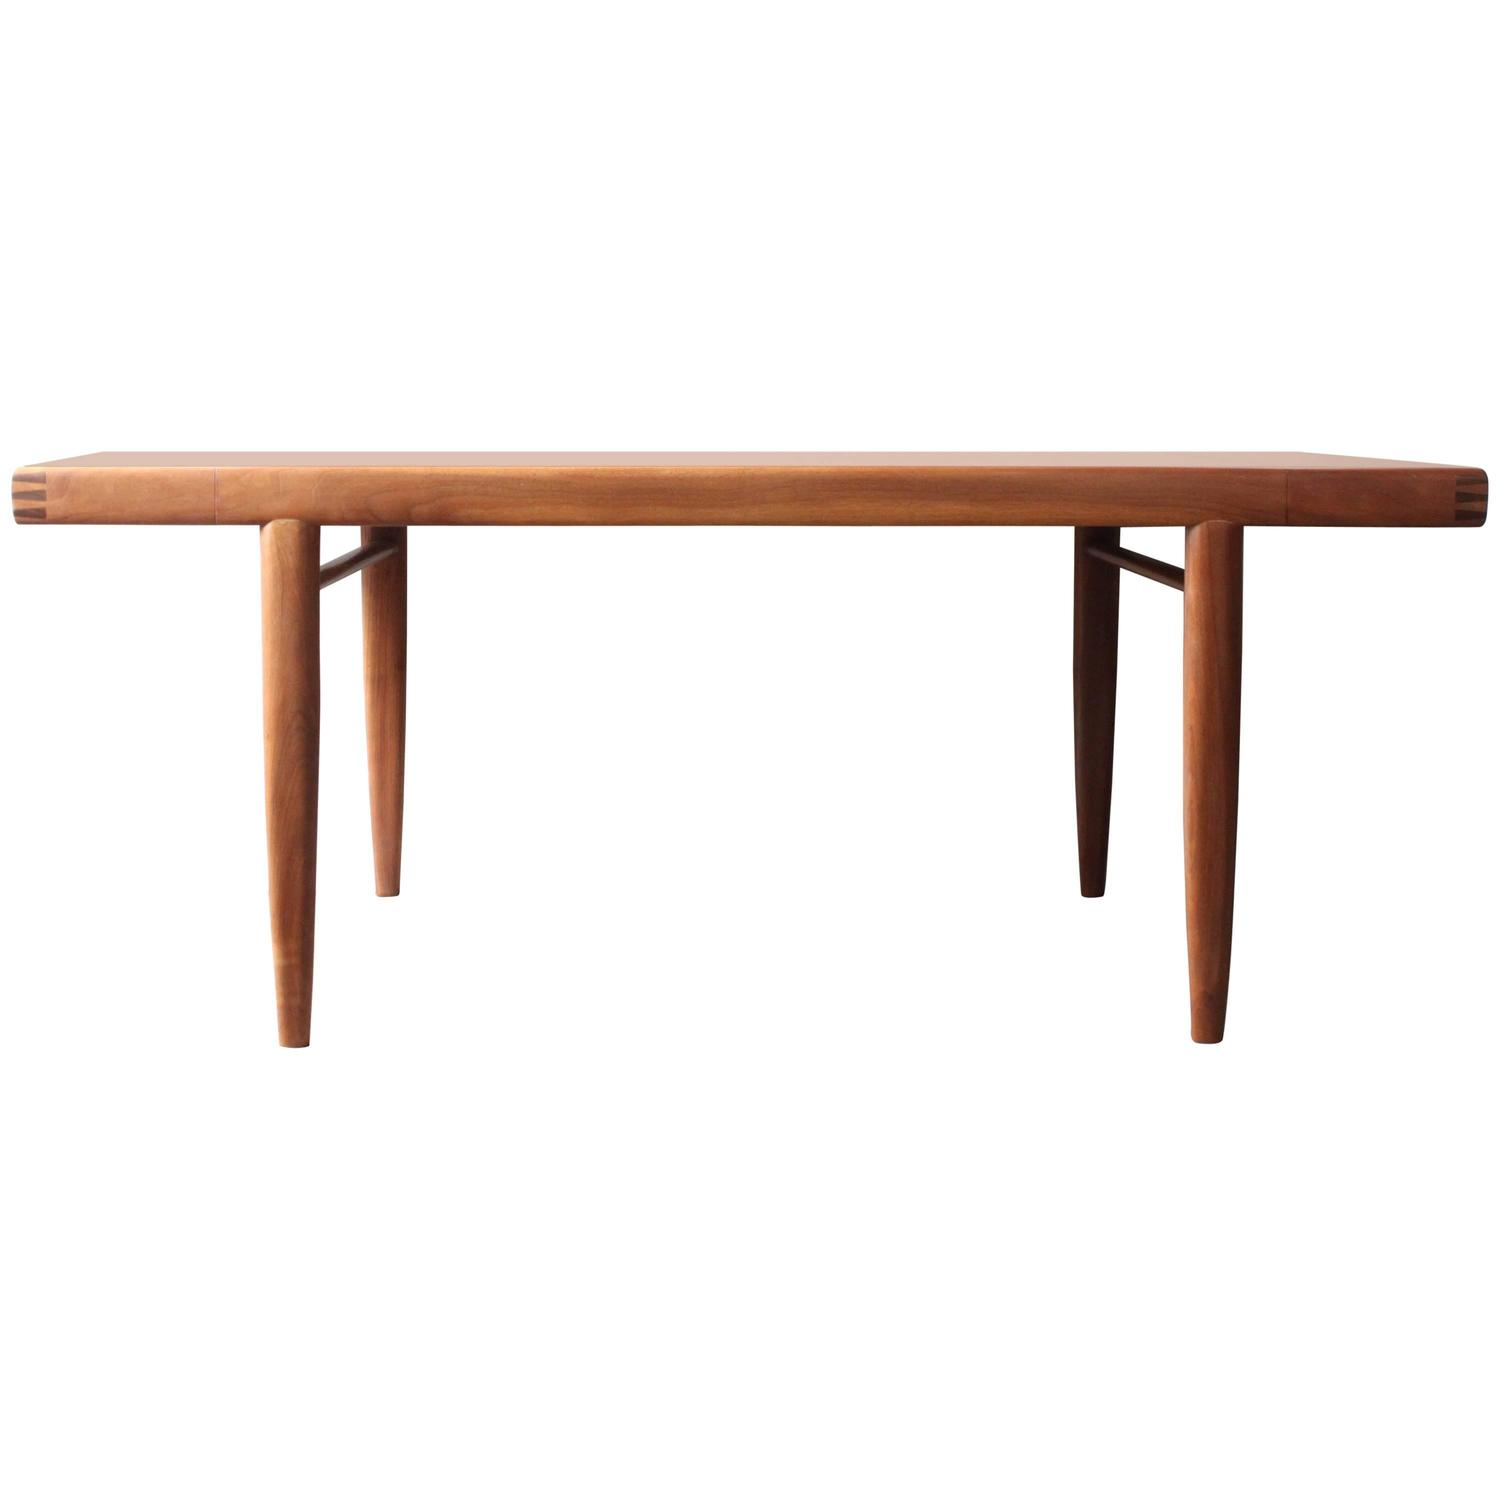 Walnut Dining Table by George Nakashima for Widdi b at 1stdibs